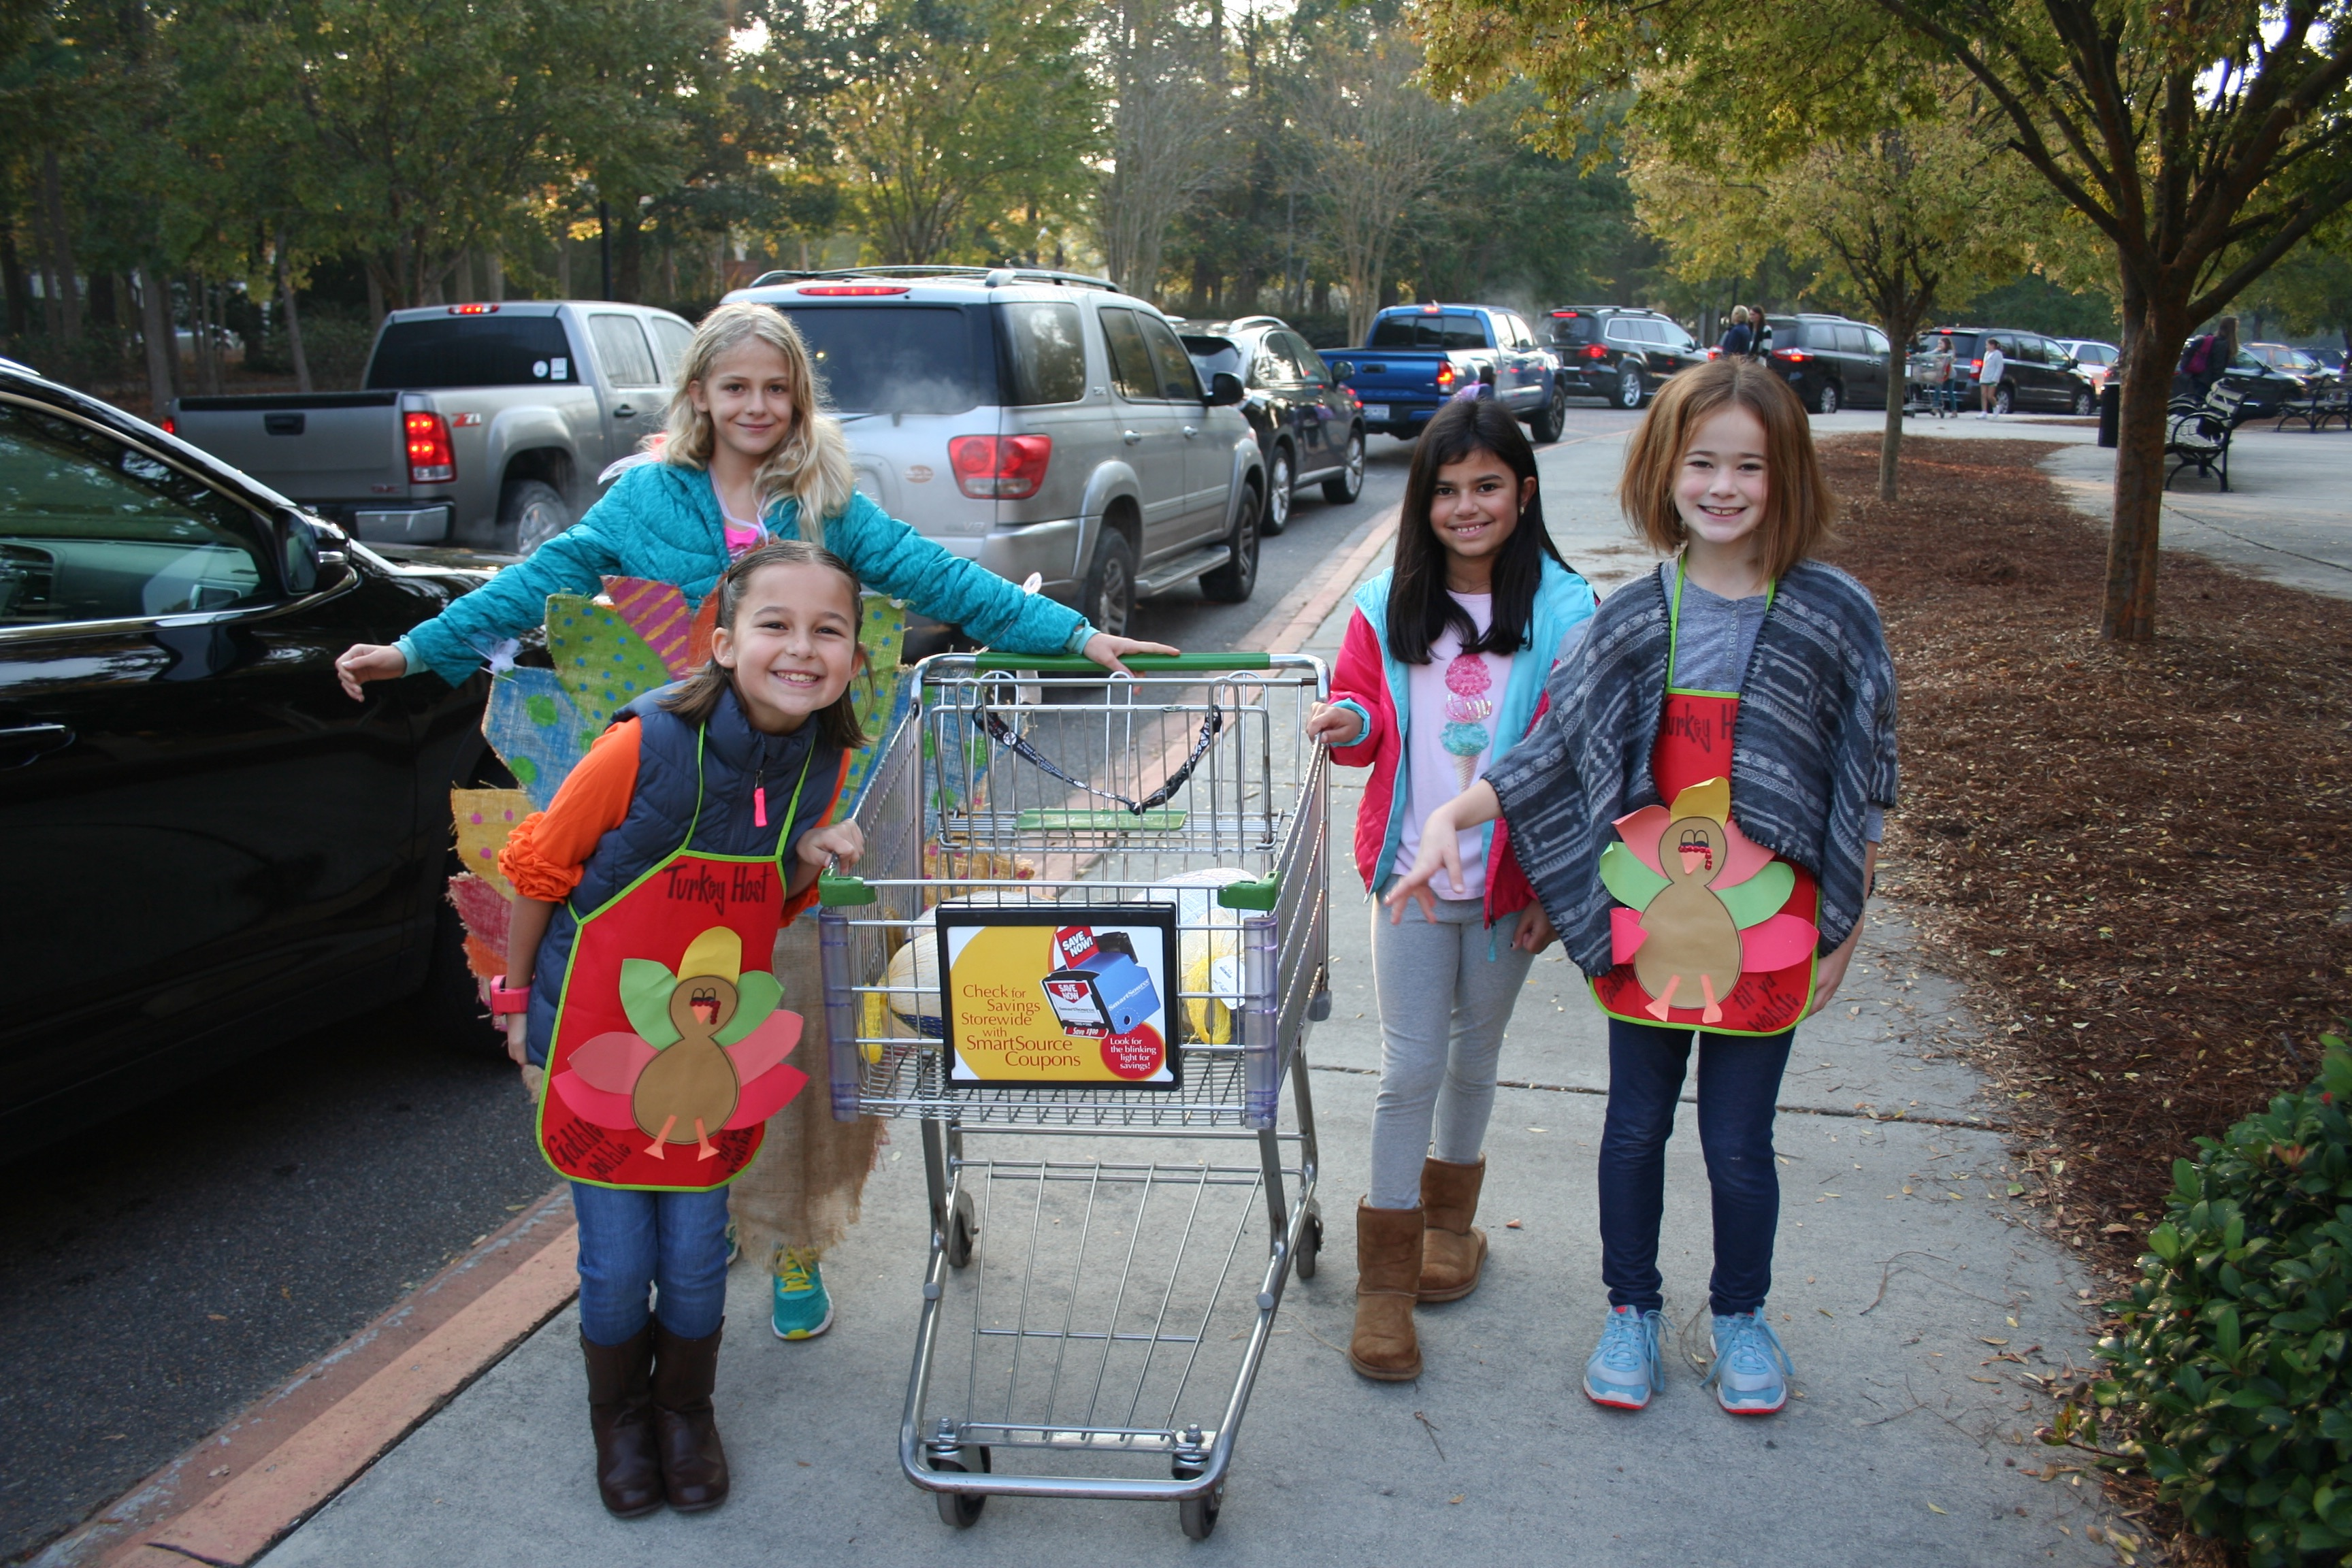 Talkin' turkey! Members of the DIS Community Crusaders Club were all smiles during their recent Frozen Turkey Drive at the school. Pictured left to right (clockwise) are Emma Ladd, Gracie Graue, Caroline D'Aguiar, and Charlotte Praete.